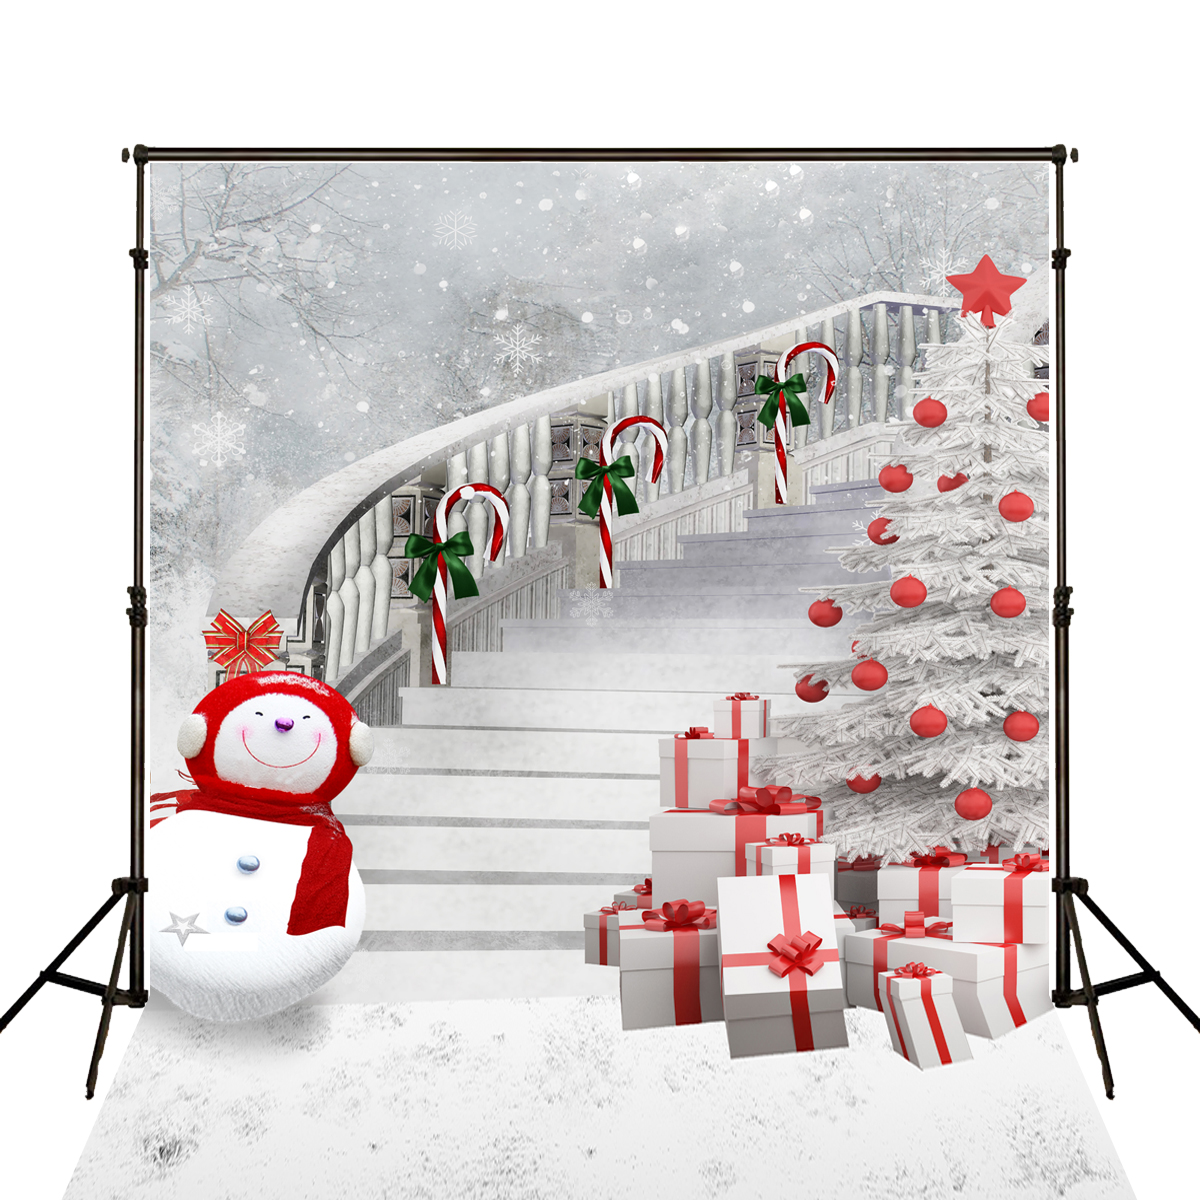 Kate Merry Christmas Backdrop Photography Red Scarf Snow Man Gift Box Fundo Fotografia Backgrounds For Photo Studio J02130 300cm 200cm about 10ft 6 5ft fundo butterflies fluttering woods3d baby photography backdrop background lk 2024